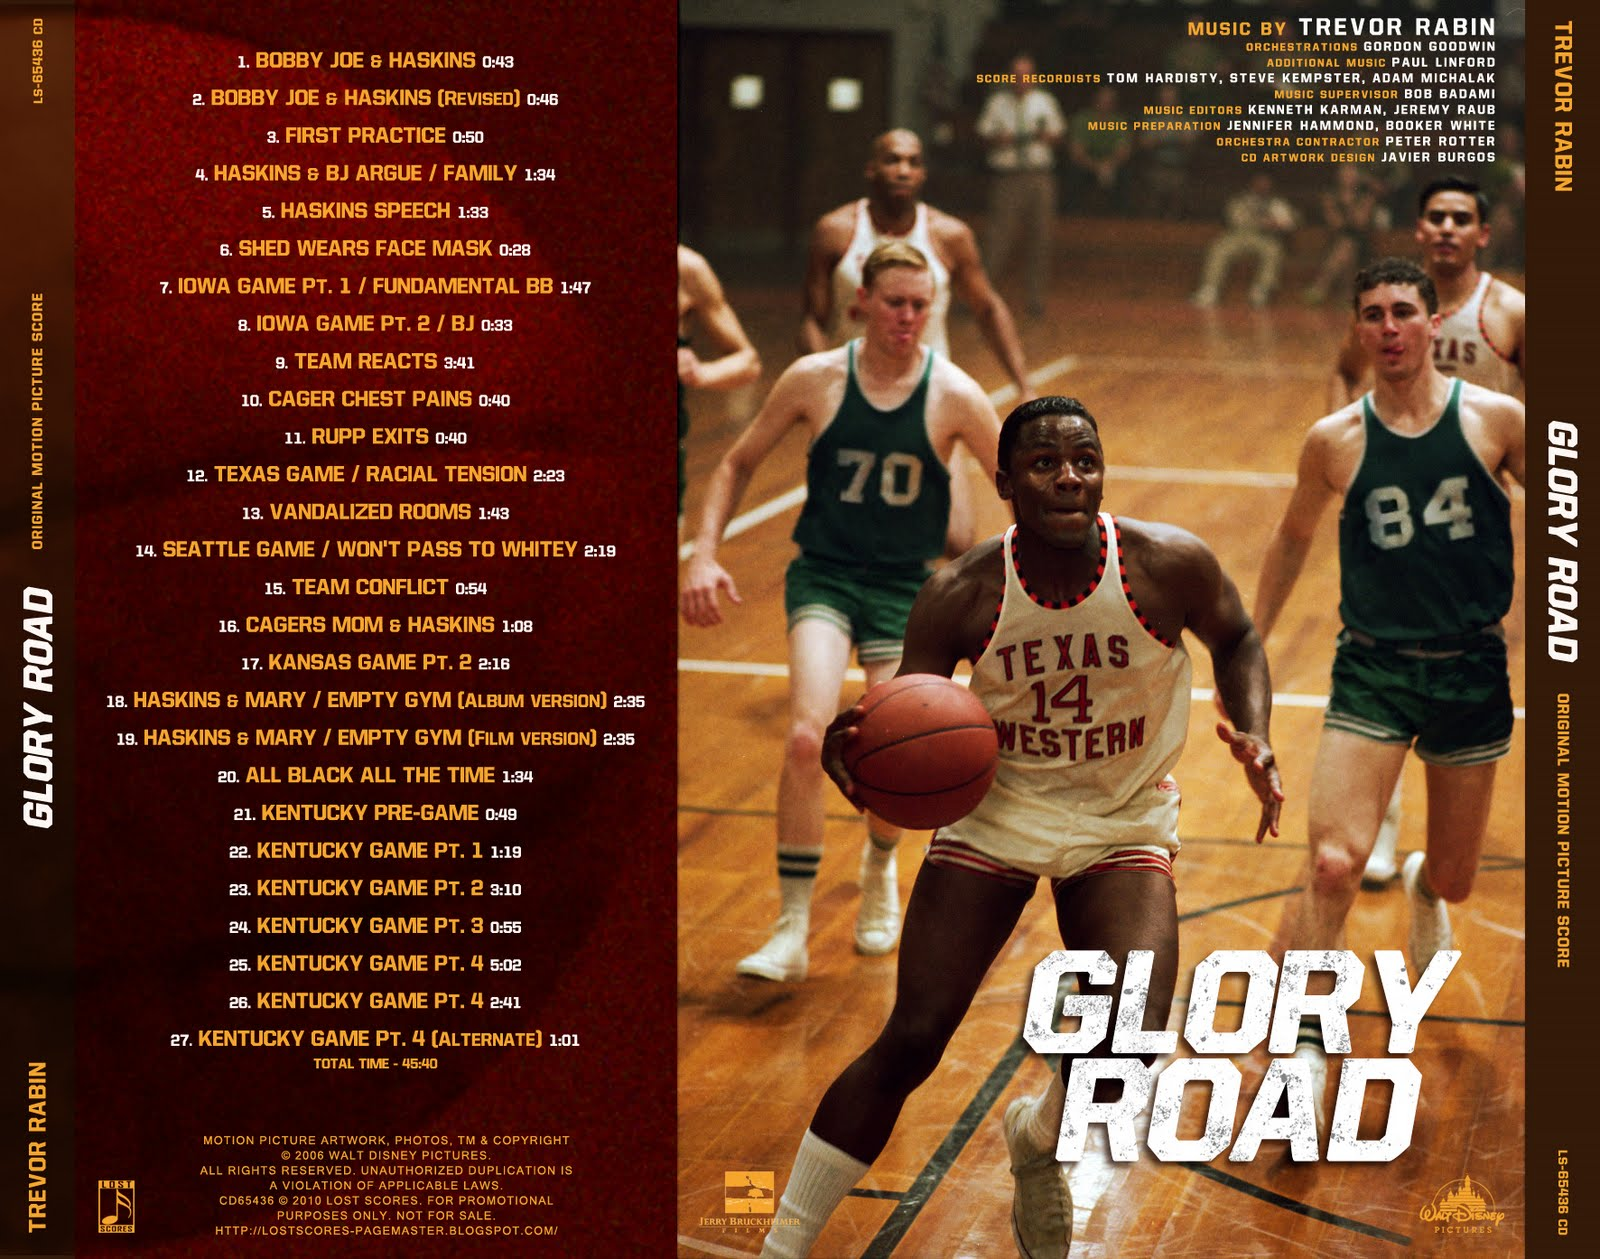 http://cdn.quotesgram.com/img/88/43/659475362-Glory_Road_-_back.jpg